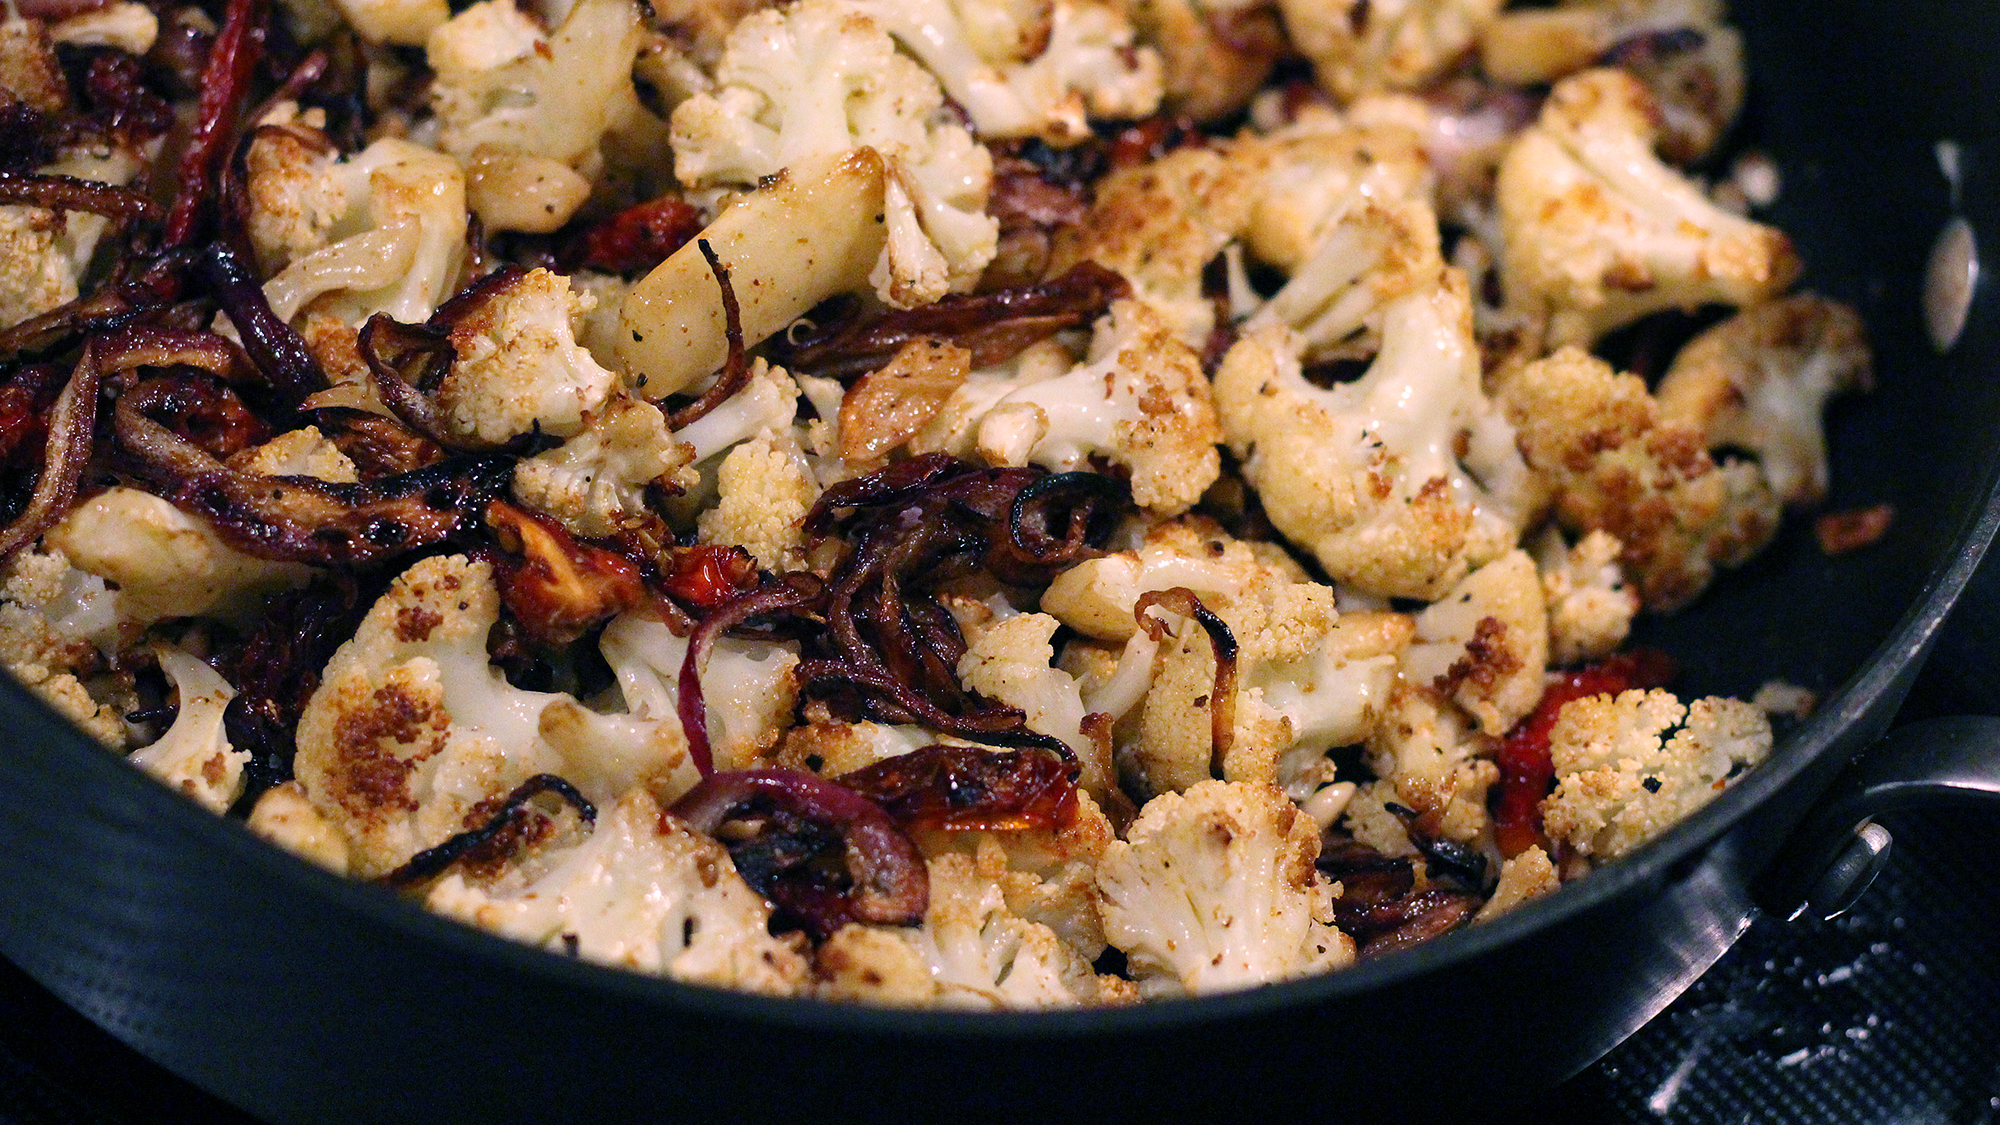 The cauliflower starts in the oven to give it it's crispy, delicious taste, but it's finished in a sauté of the caramelized onions, sun-dried tomatoes, lemon juice and, eventually, arugula.